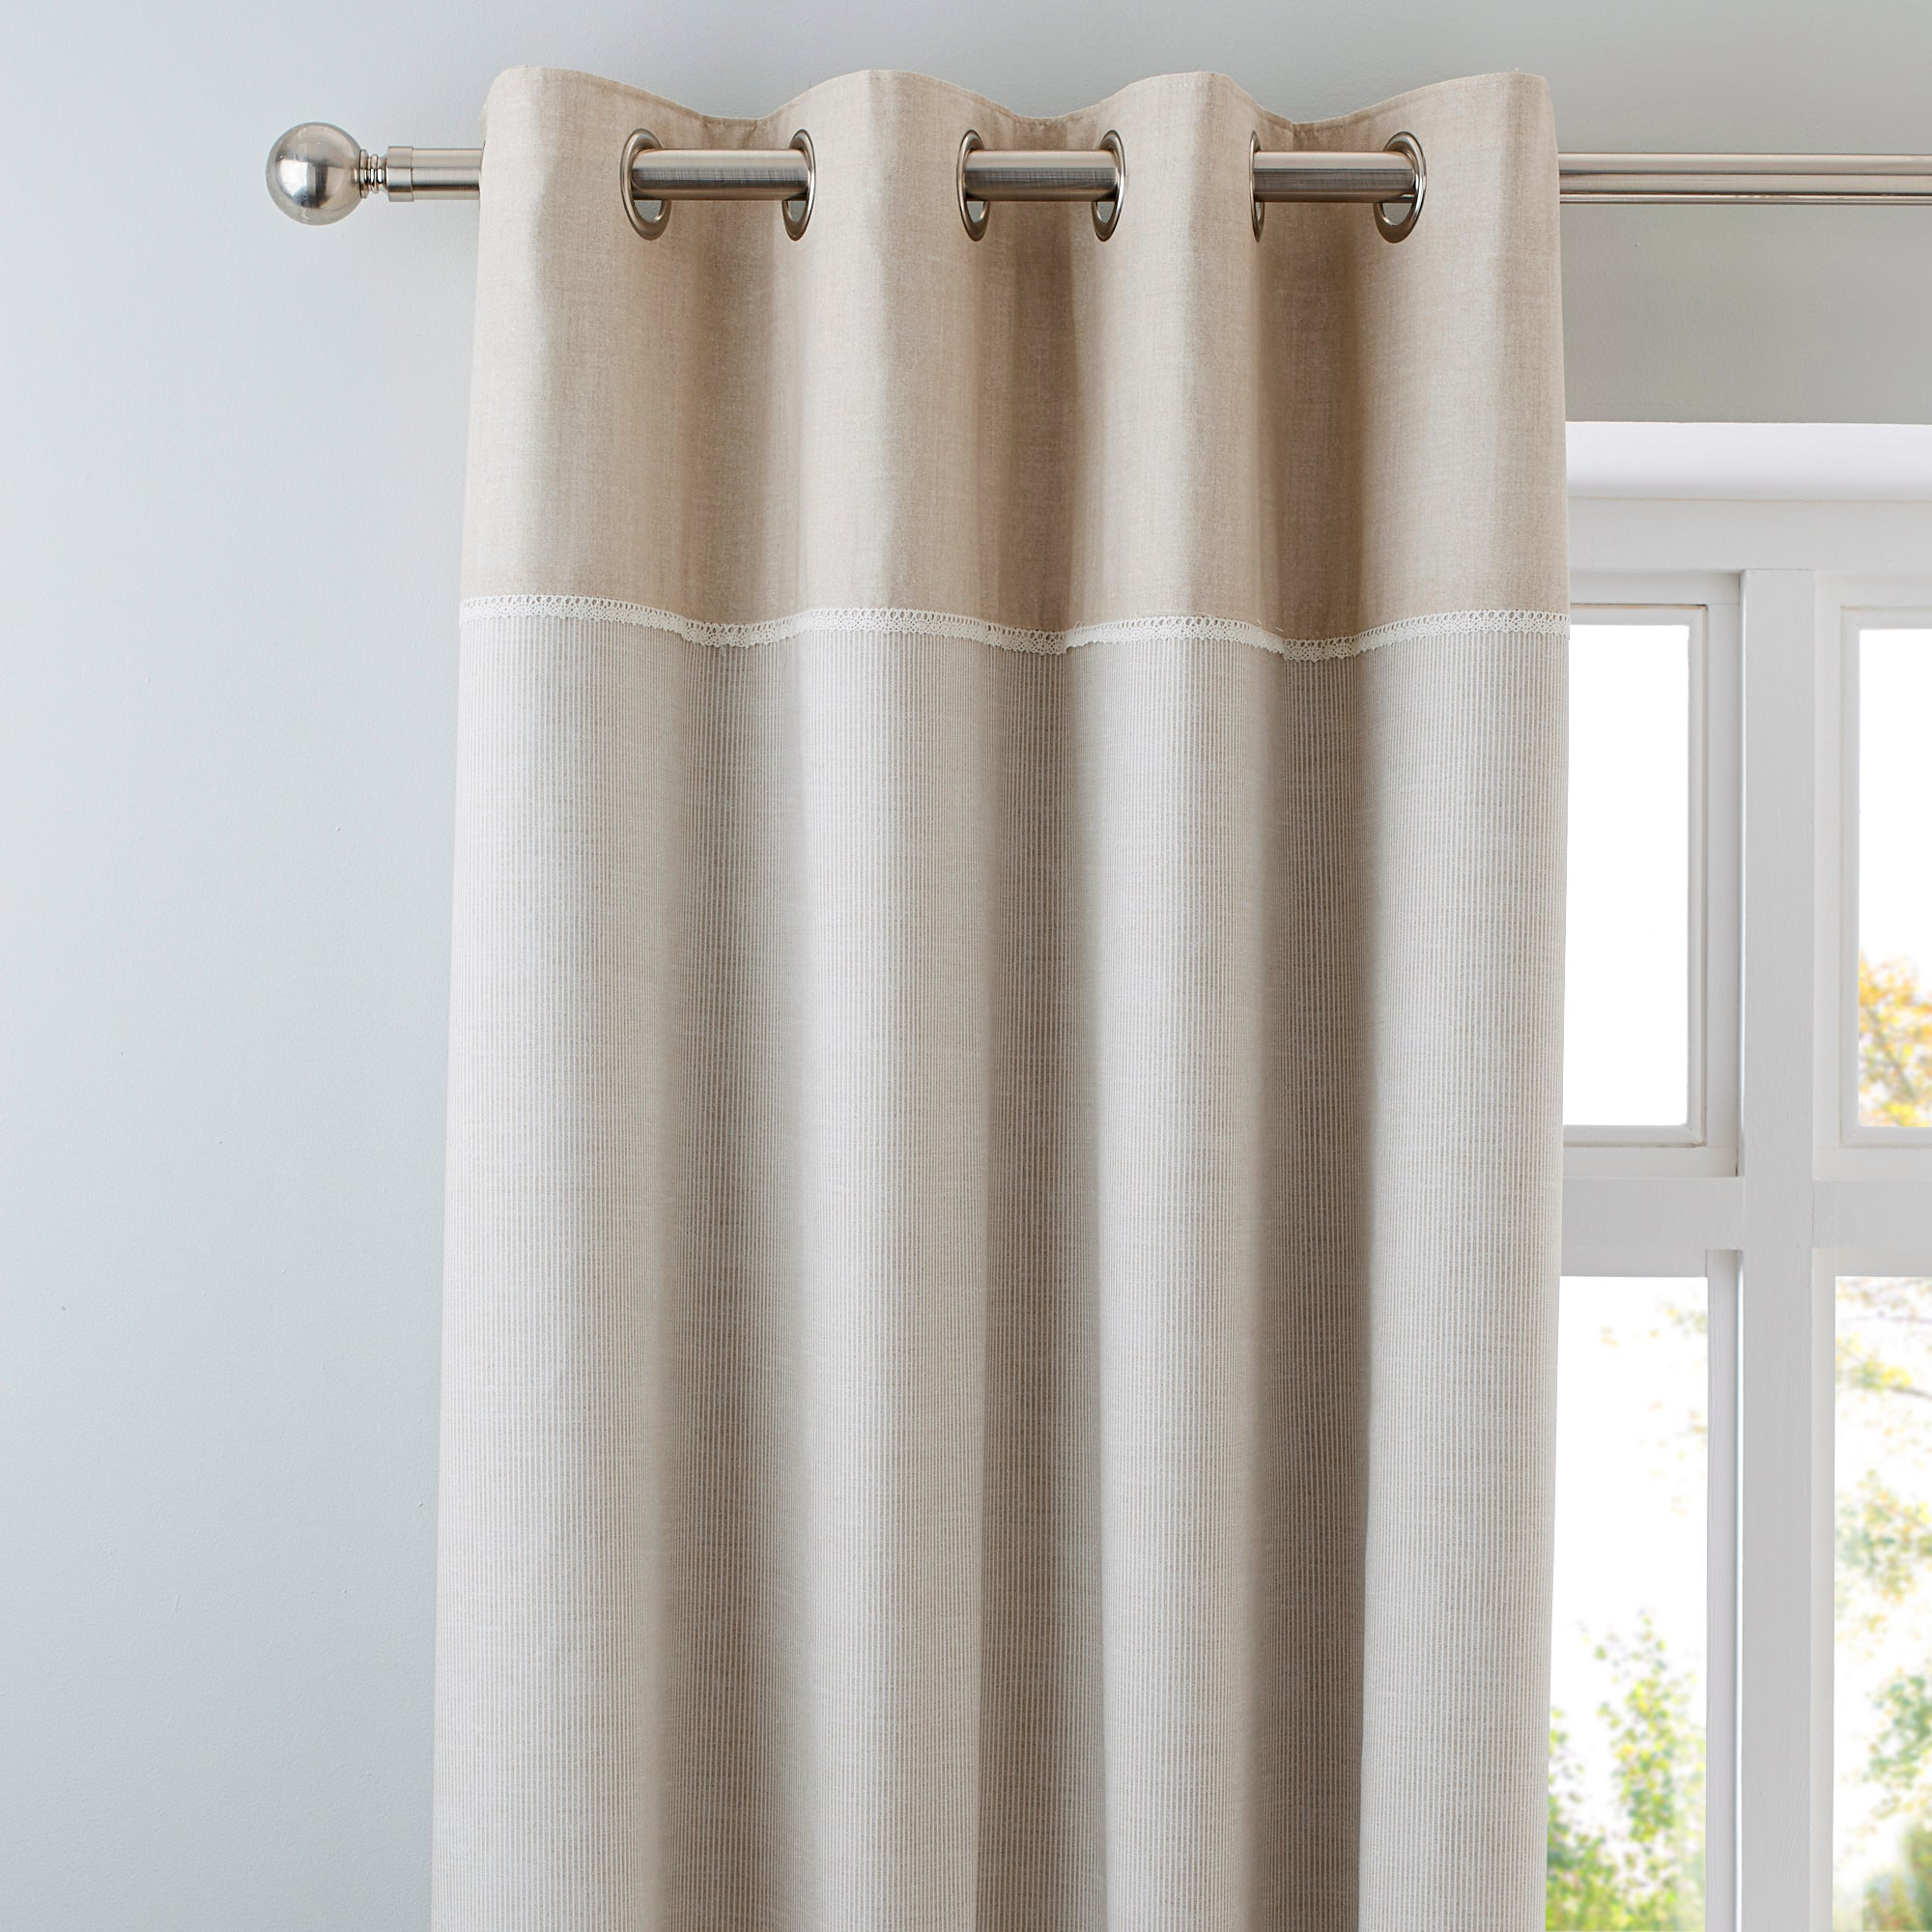 Natural Millie Thermal Eyelet Curtains